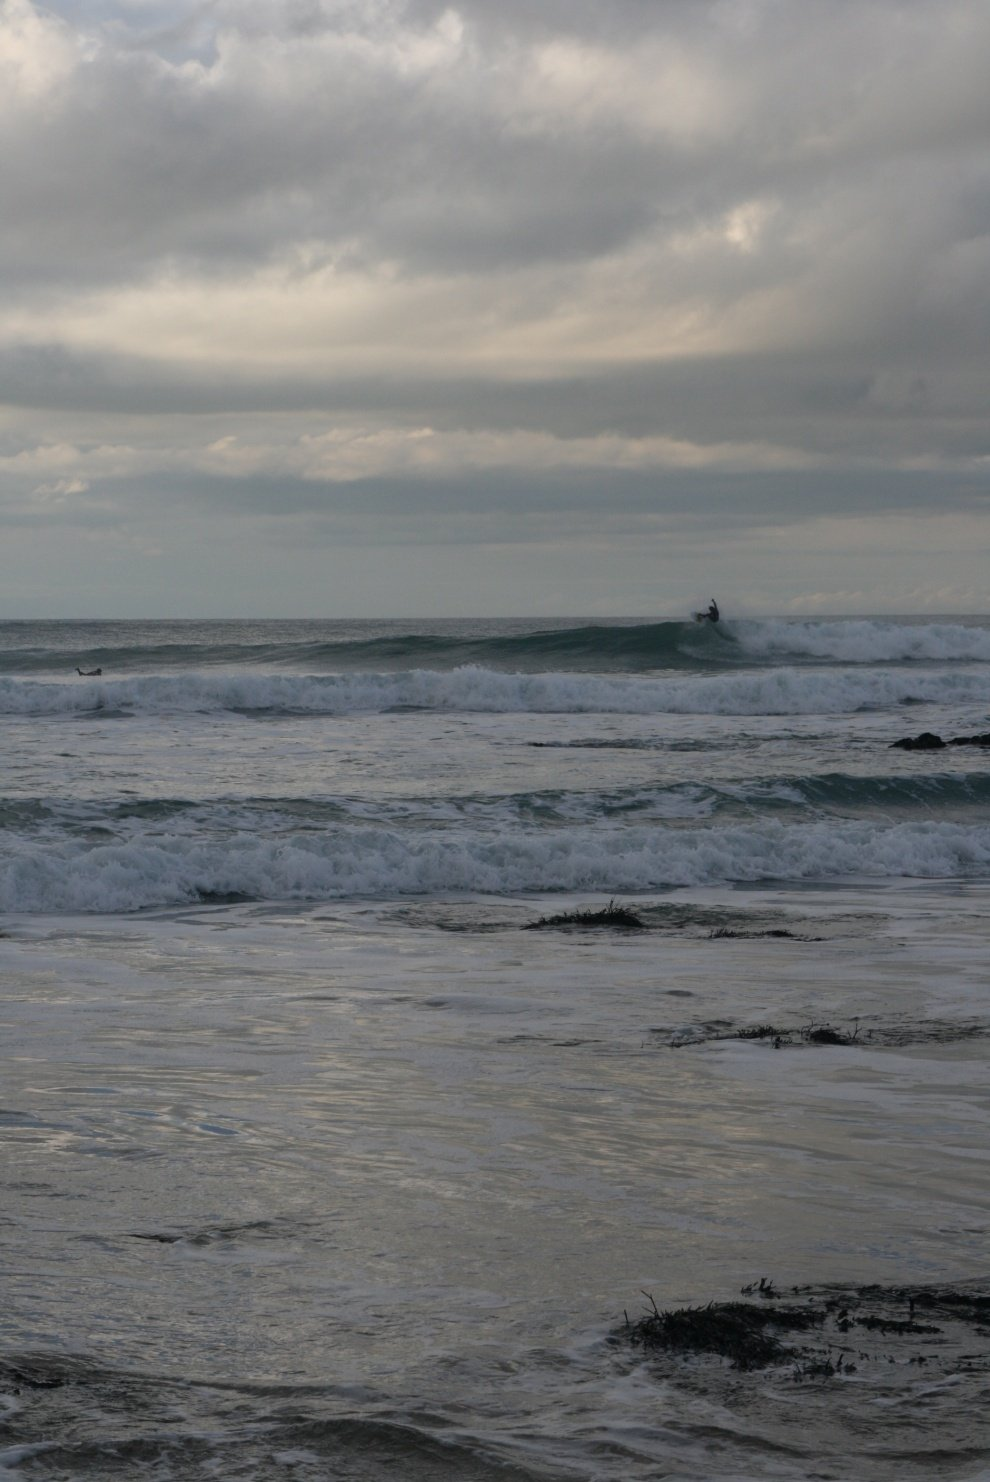 guillermoalvarez's photo of Porthtowan